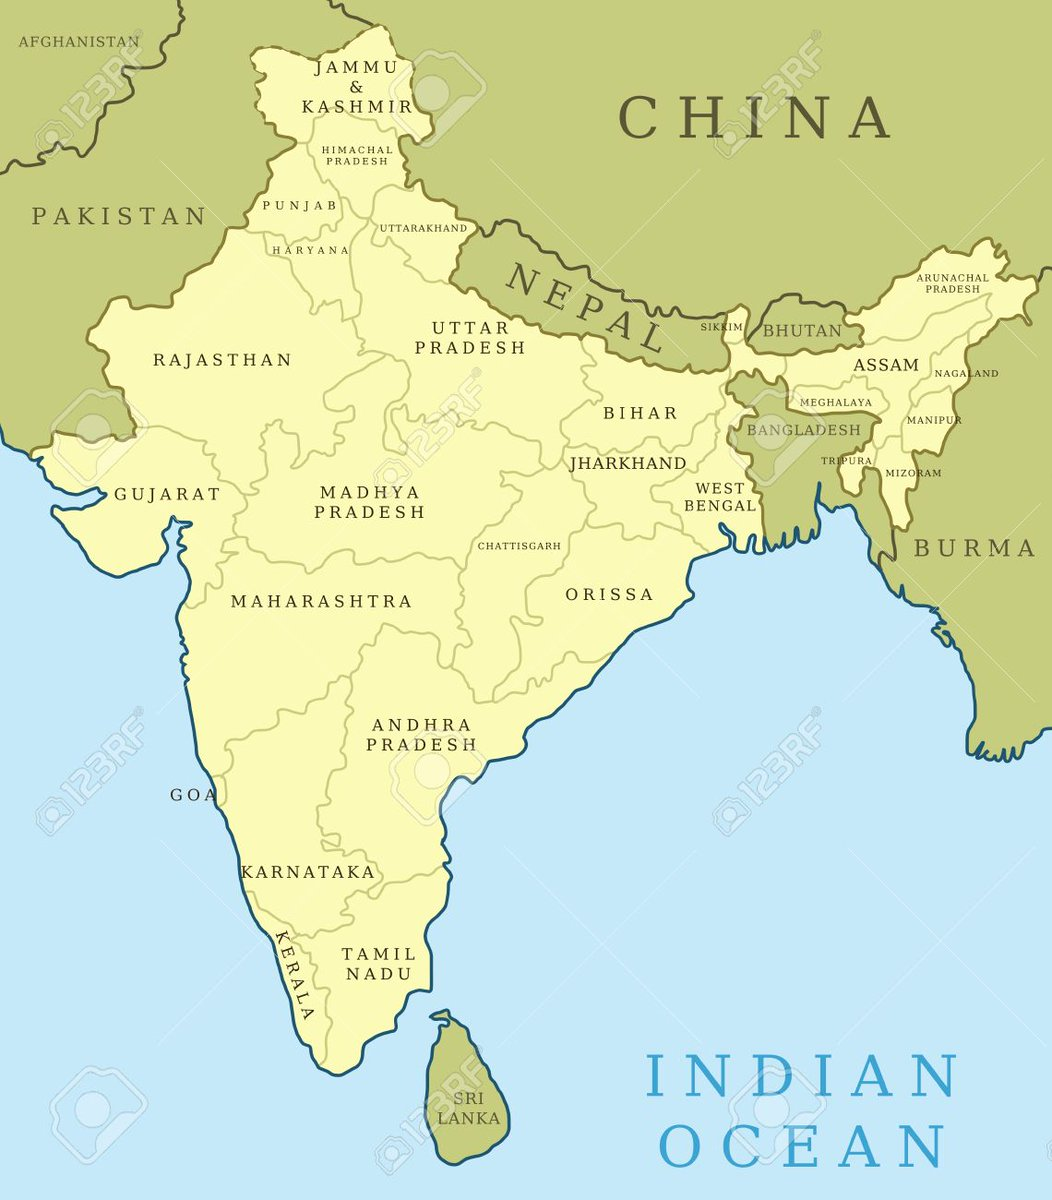 Actual Map Of India.Devendra Ahirwar On Twitter 3 But Yesterday I Came To Know Its